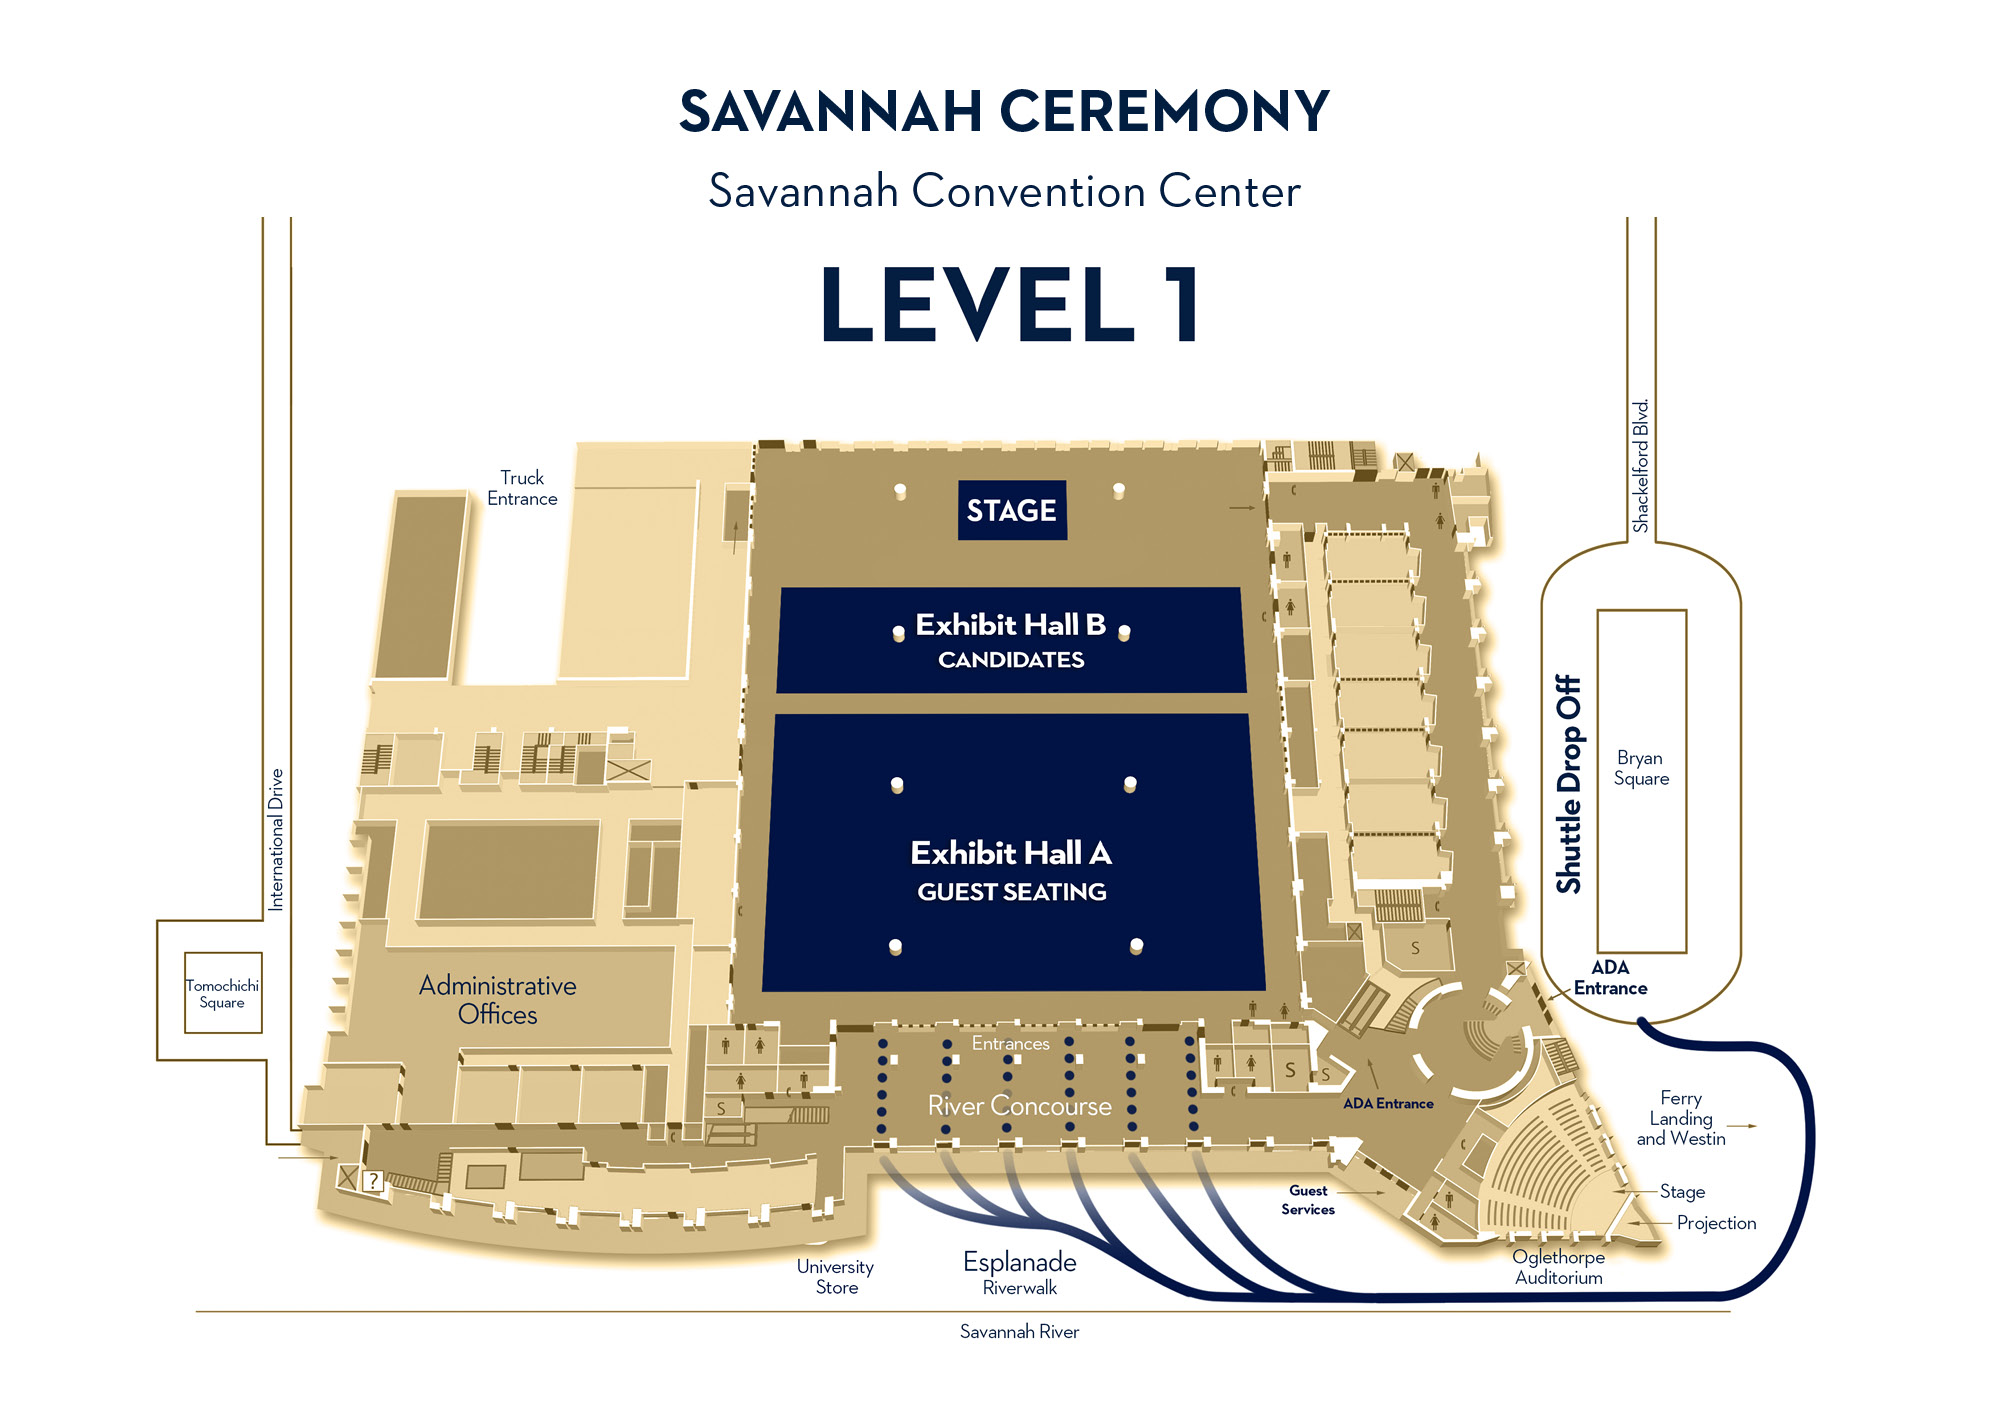 savannah ceremony, savannah convention center, level 1, Exhibit B near stage, Exhibit A and ADA seating in the rear